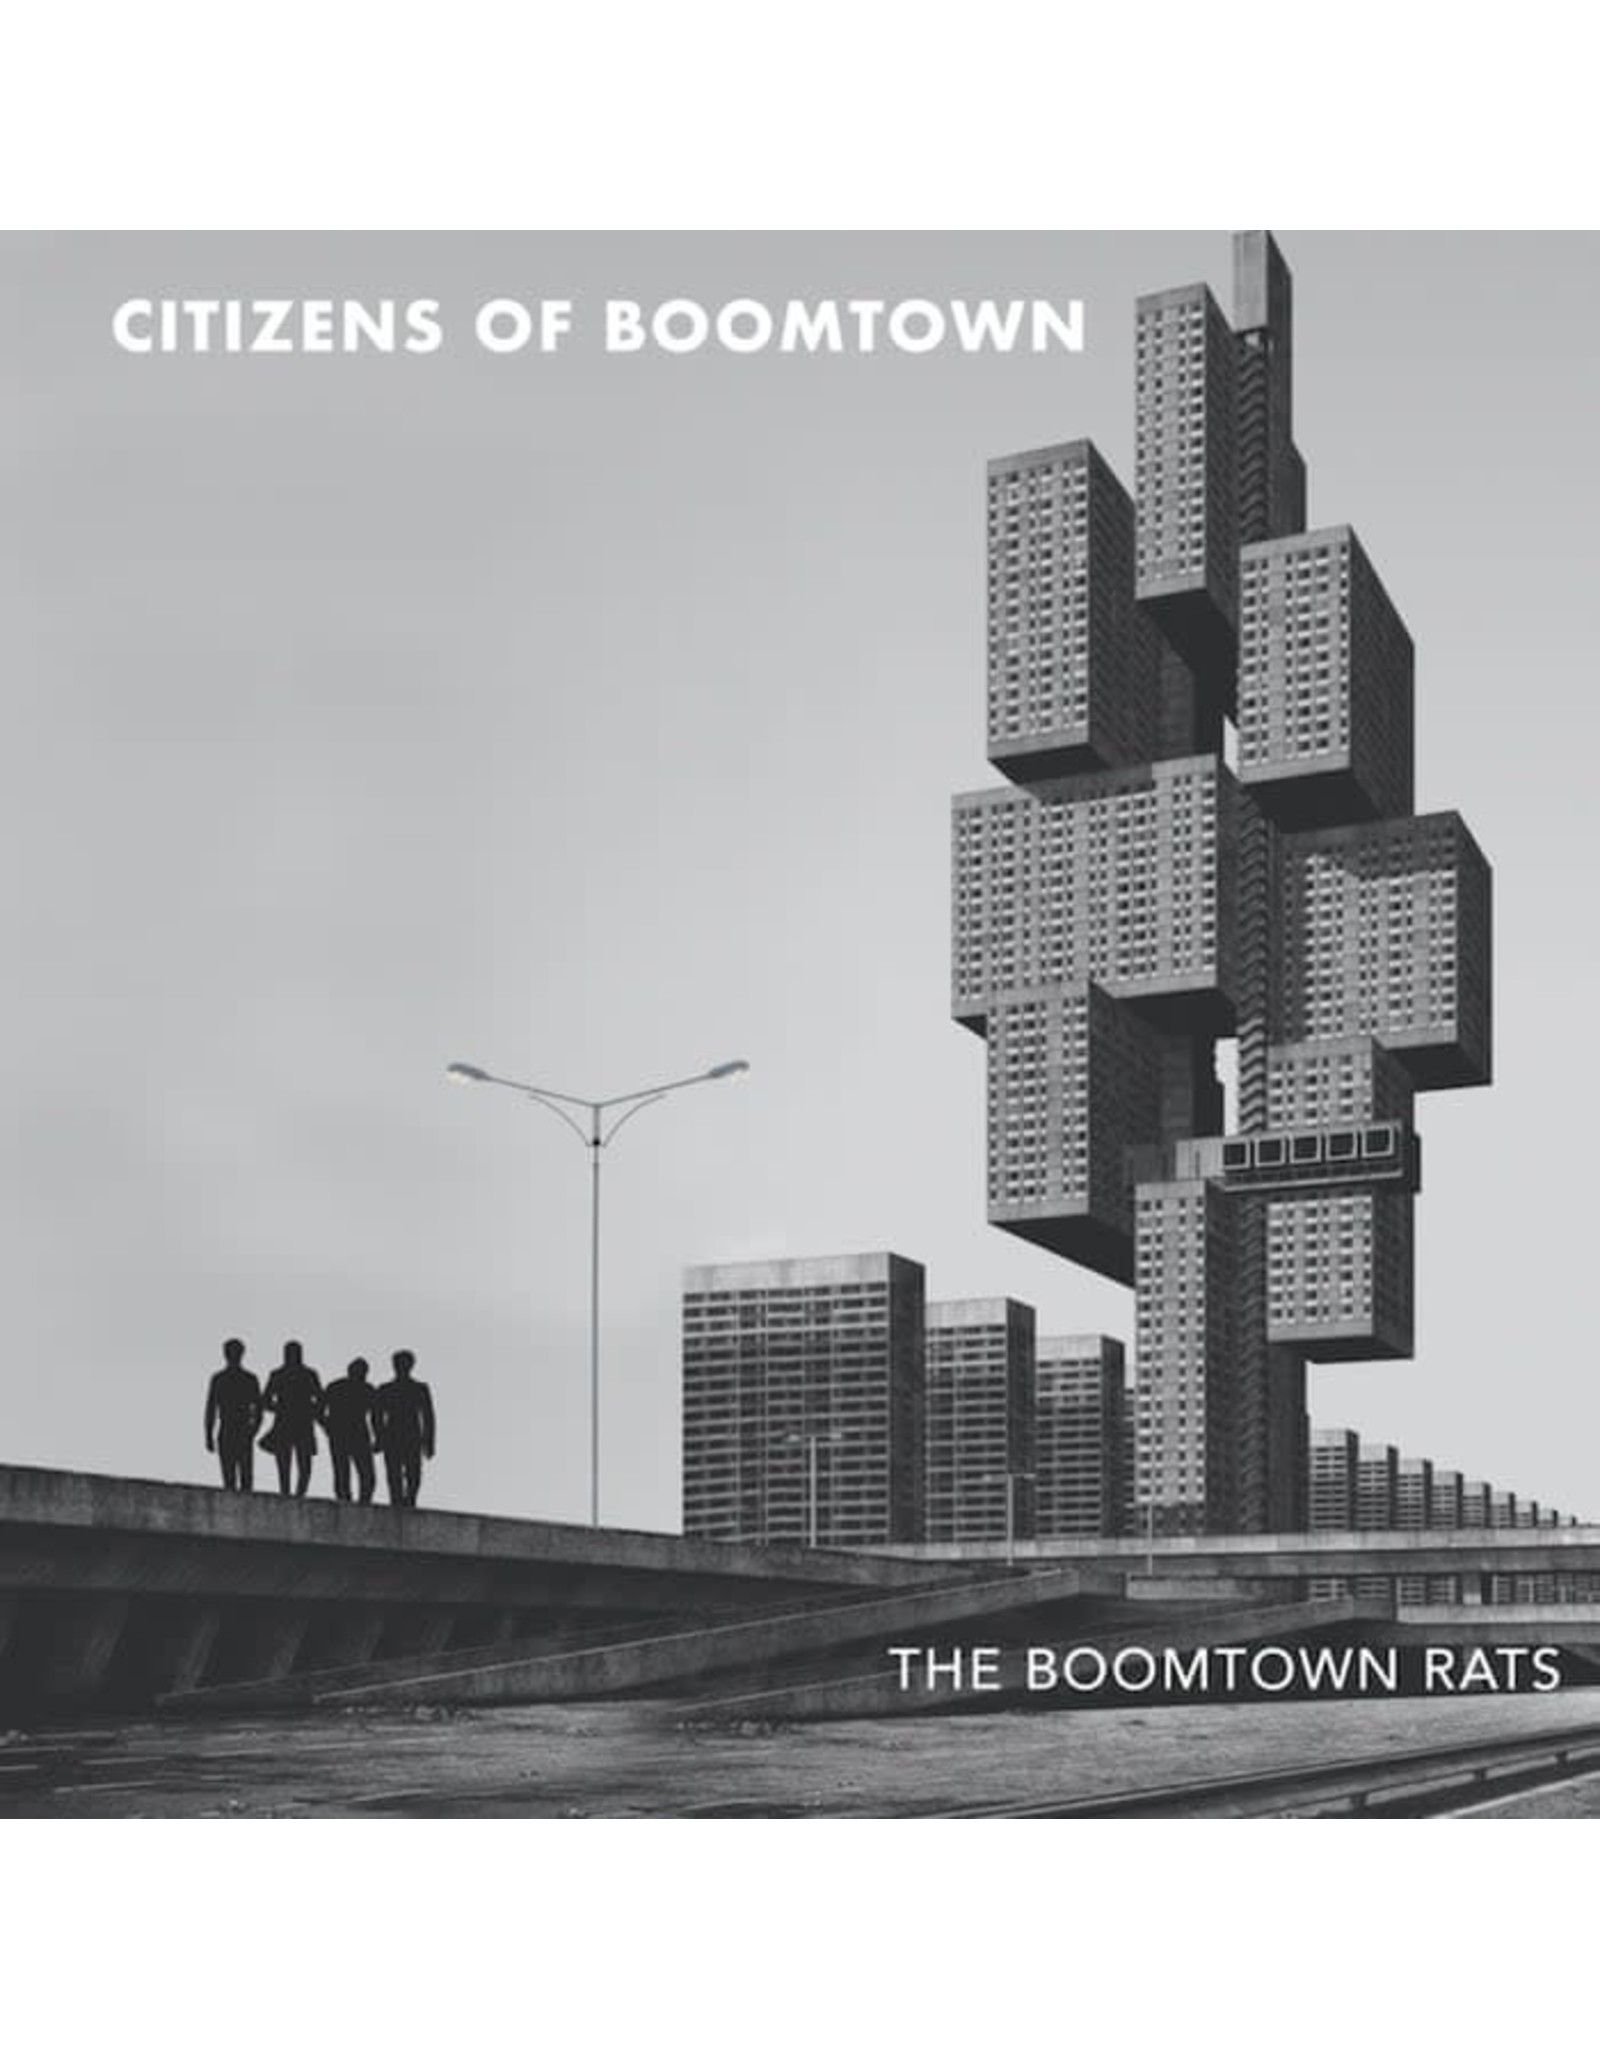 Boomtown Rats - Citizens Of Boomtown LP